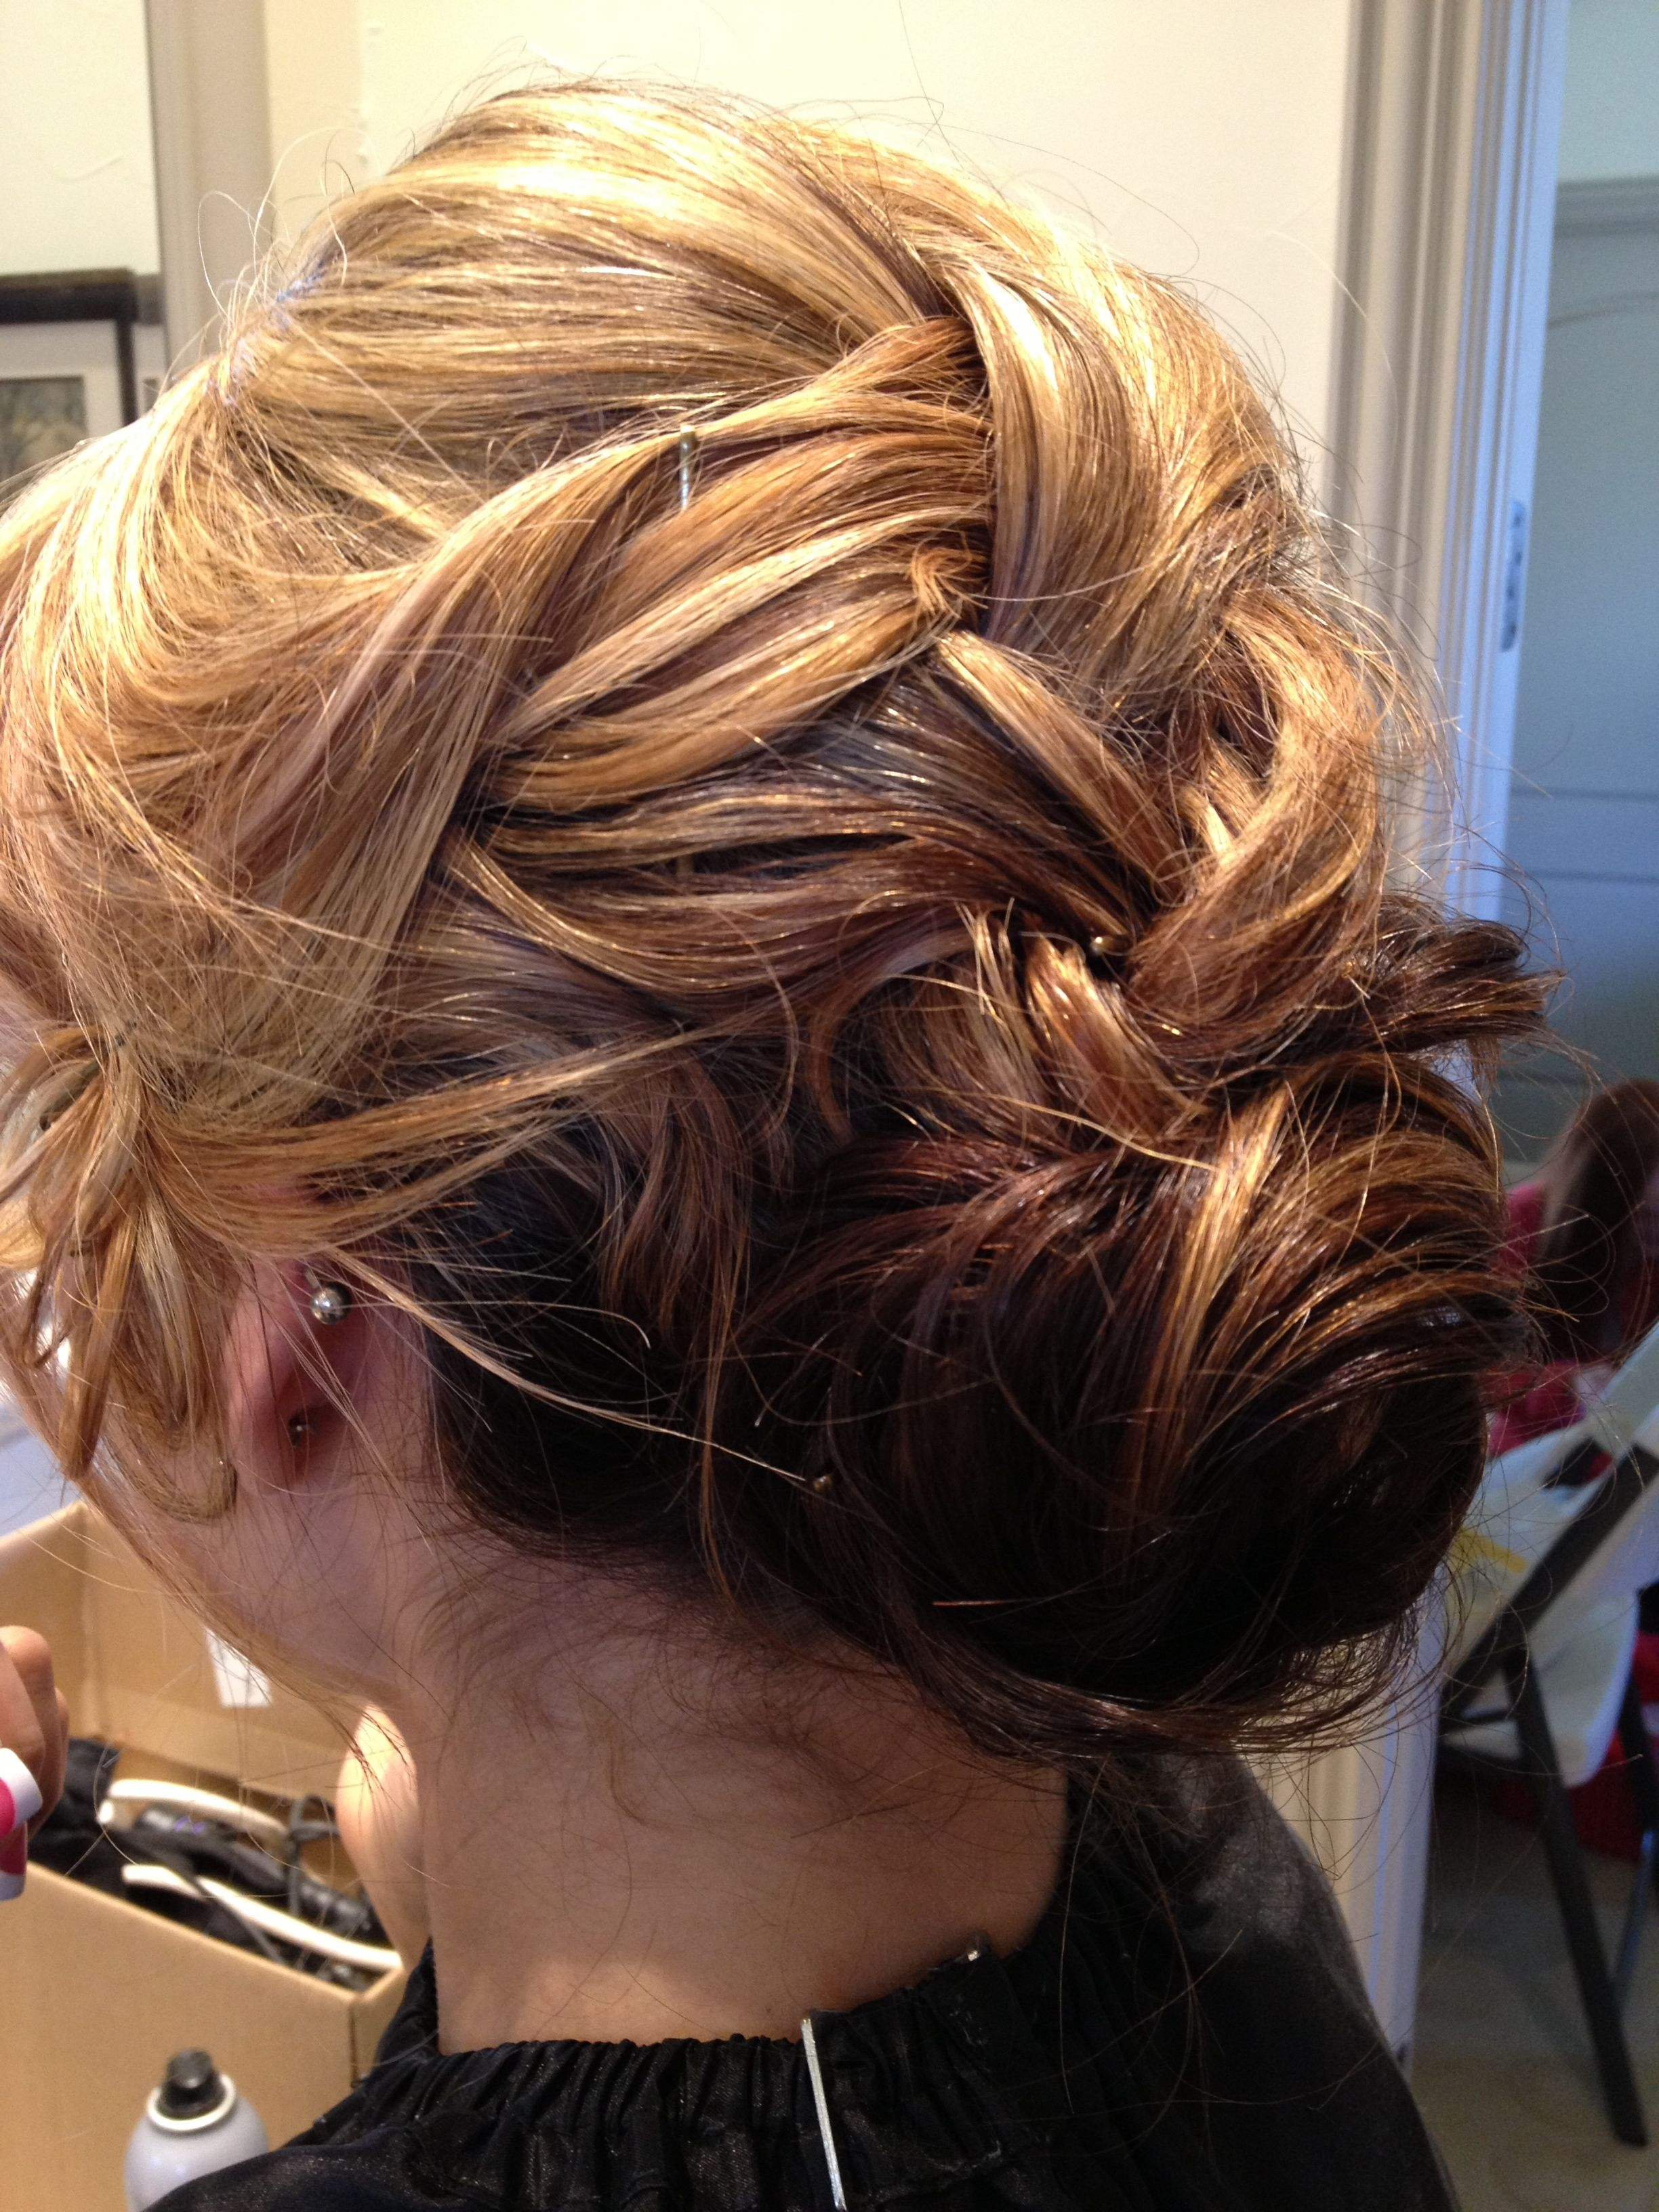 Well Known French Braid Low Chignon Hairstyles Inside Loose French Braid Into Low Bun Chignon Formal Hair Prom (Gallery 9 of 20)